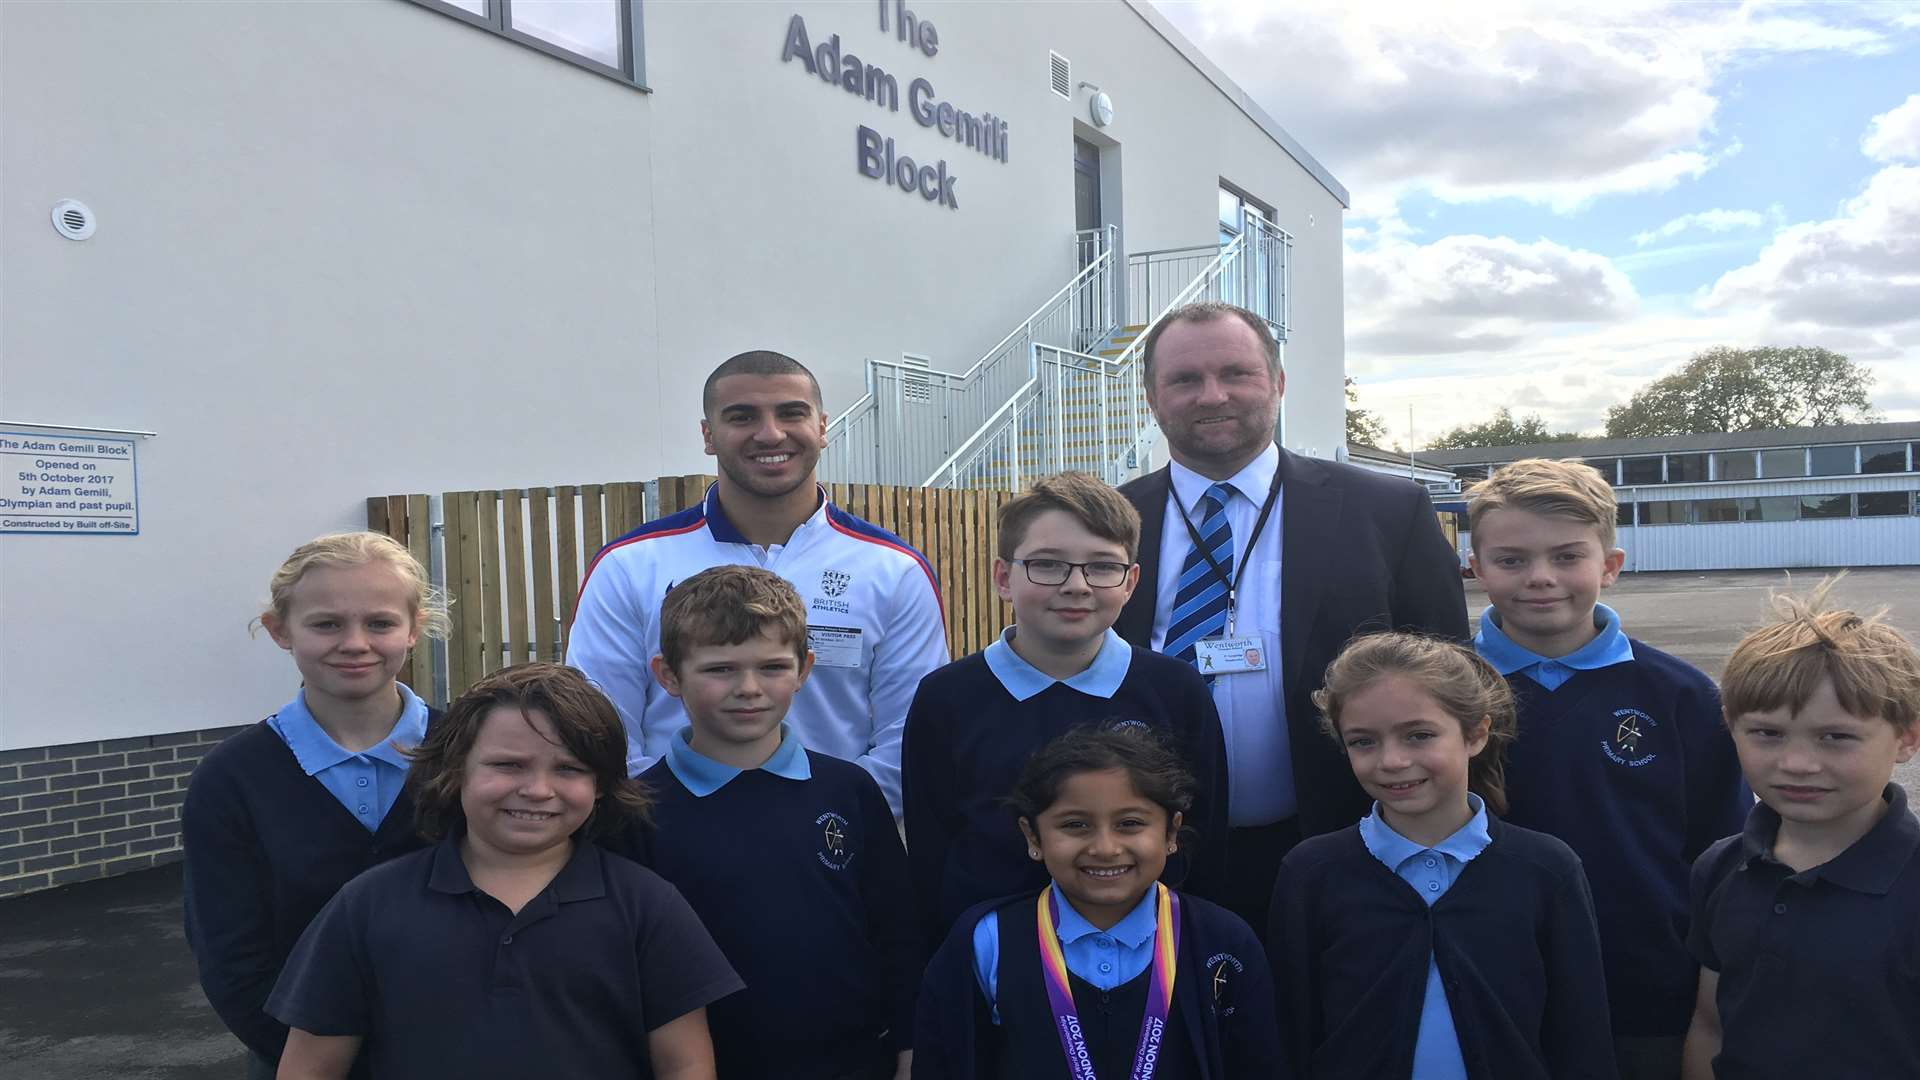 Sprinter Adam Gemili is welcomed by headteacher Paul Langridge and pupils at his old school